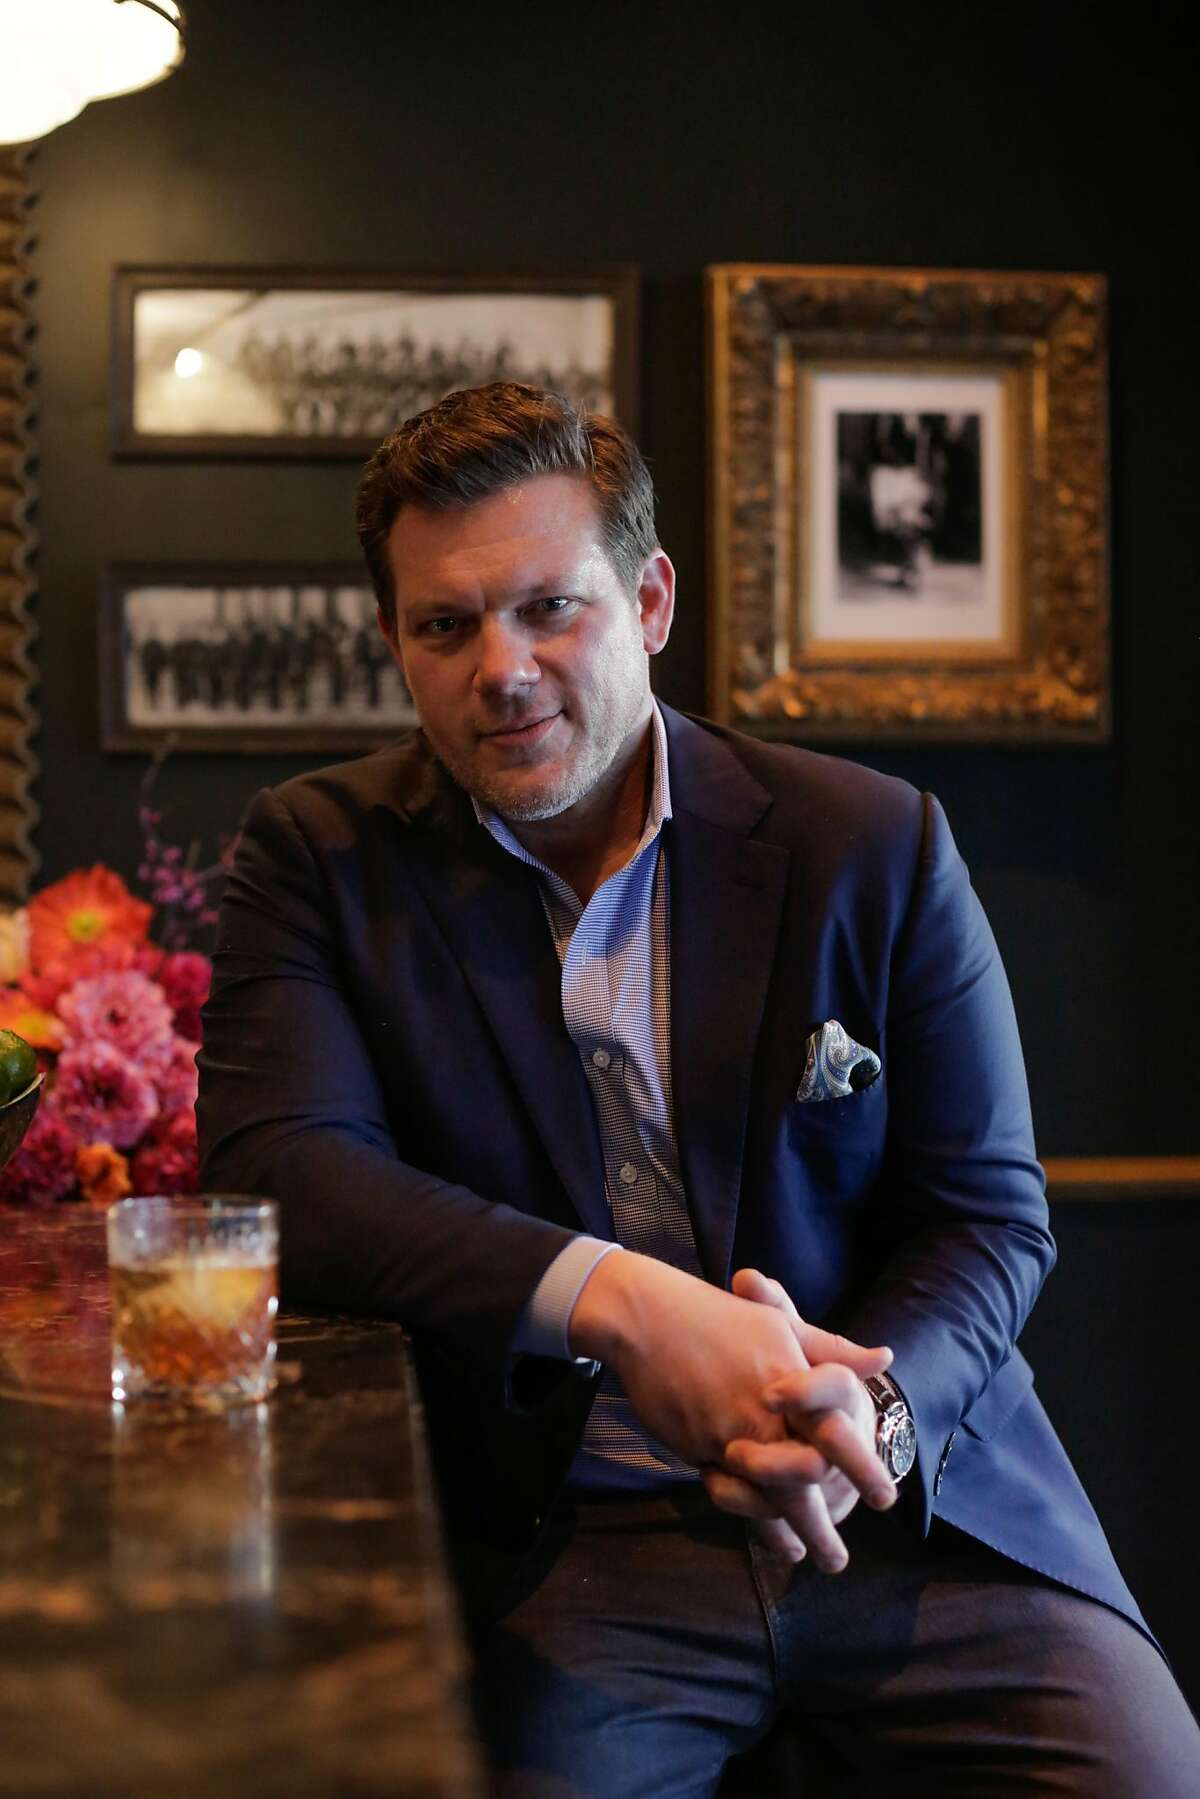 Chef and television host Tyler Florence sits for a portrait at the bar of Sequoia in the financial district of San Francisco, California, on Thursday, March 2, 2017.